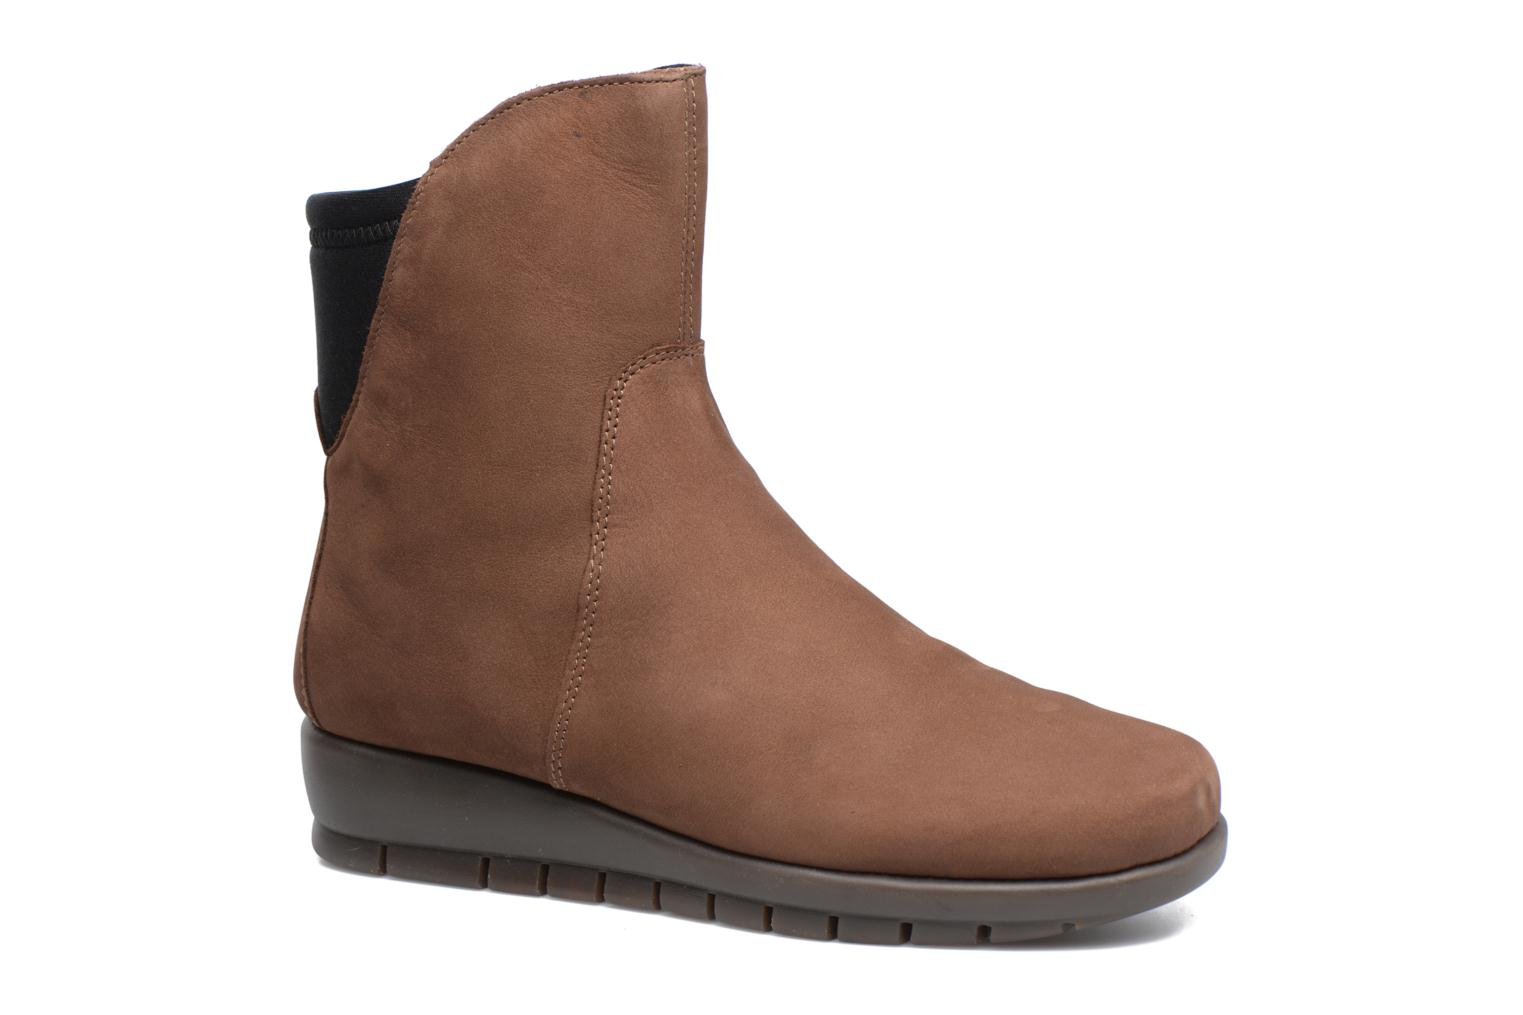 Bottines et boots Aerosoles New Moves Marron vue détail/paire